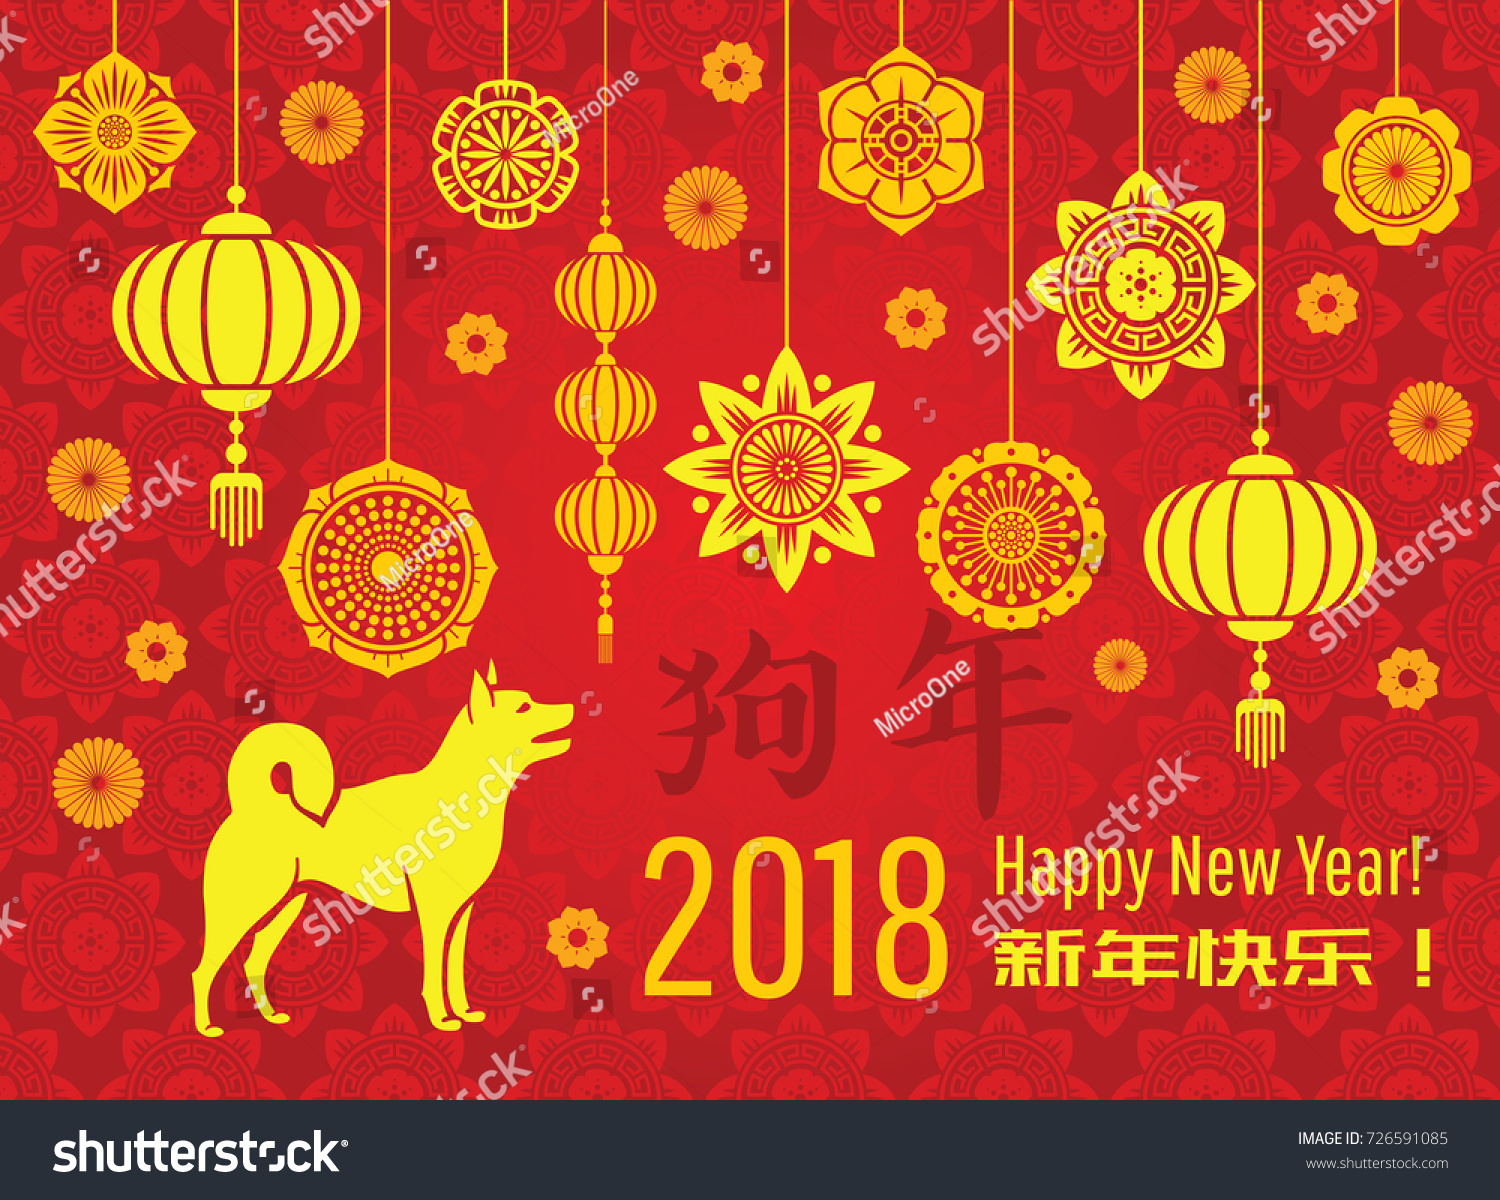 chinese new year 2018 wallpaper with asian lanterns and decorative elements dog year vector greeting